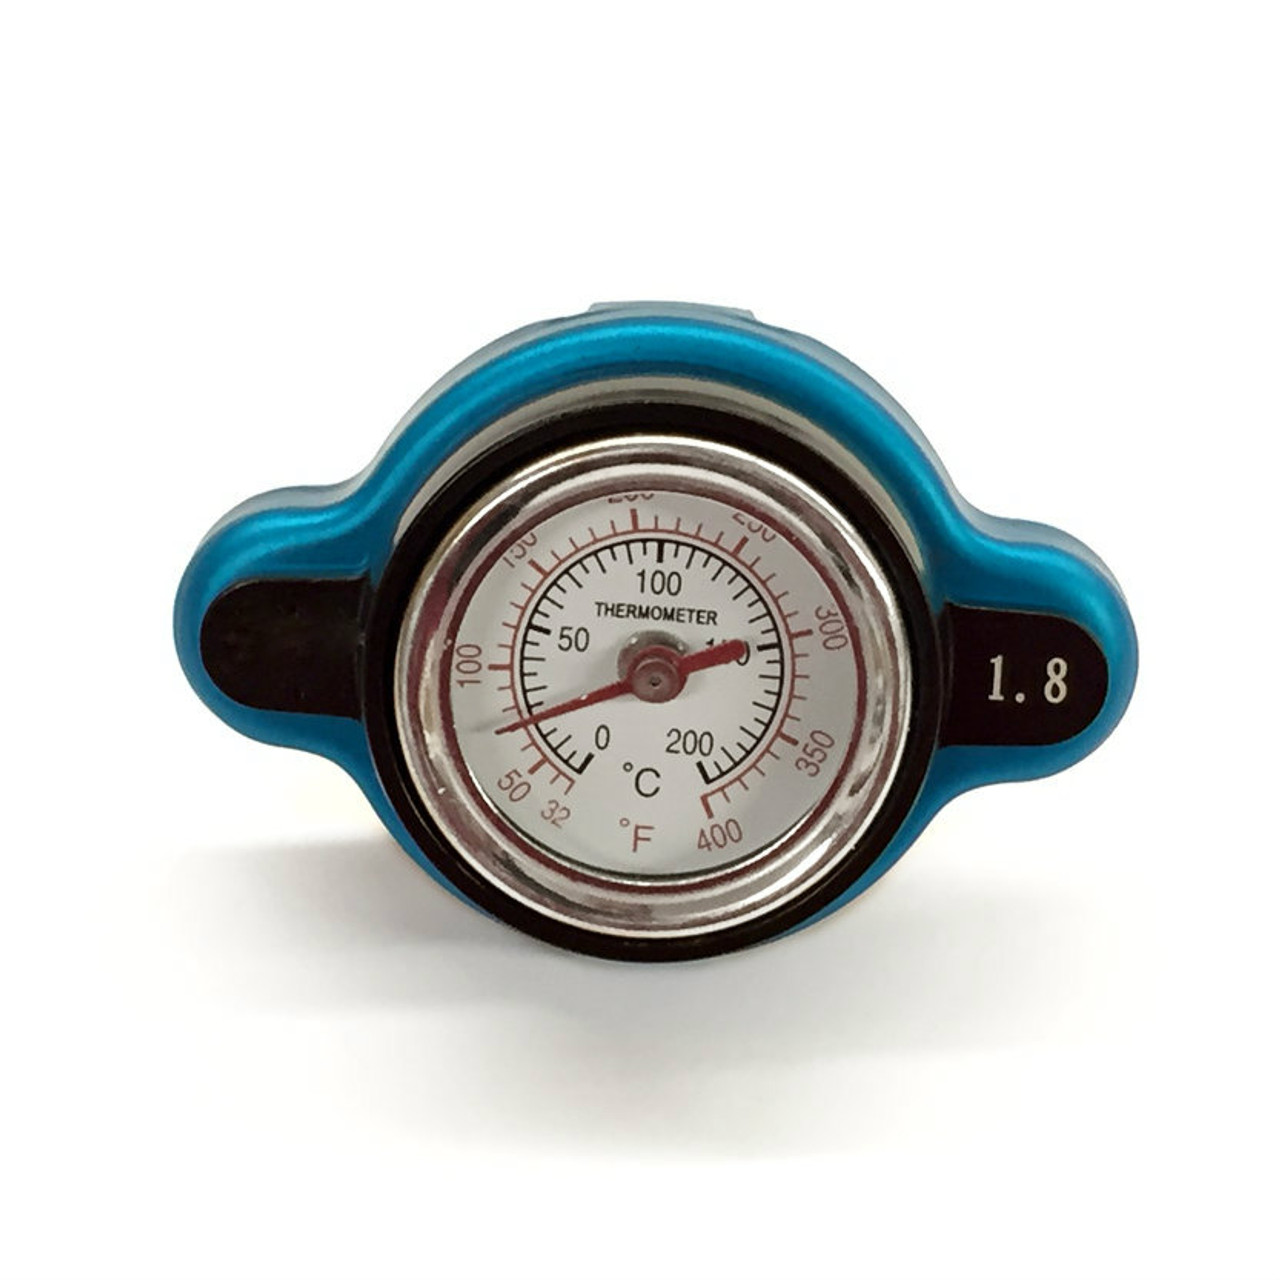 YAMAHA YZ250F High Pressure Radiator Cap with Temperature Gauge